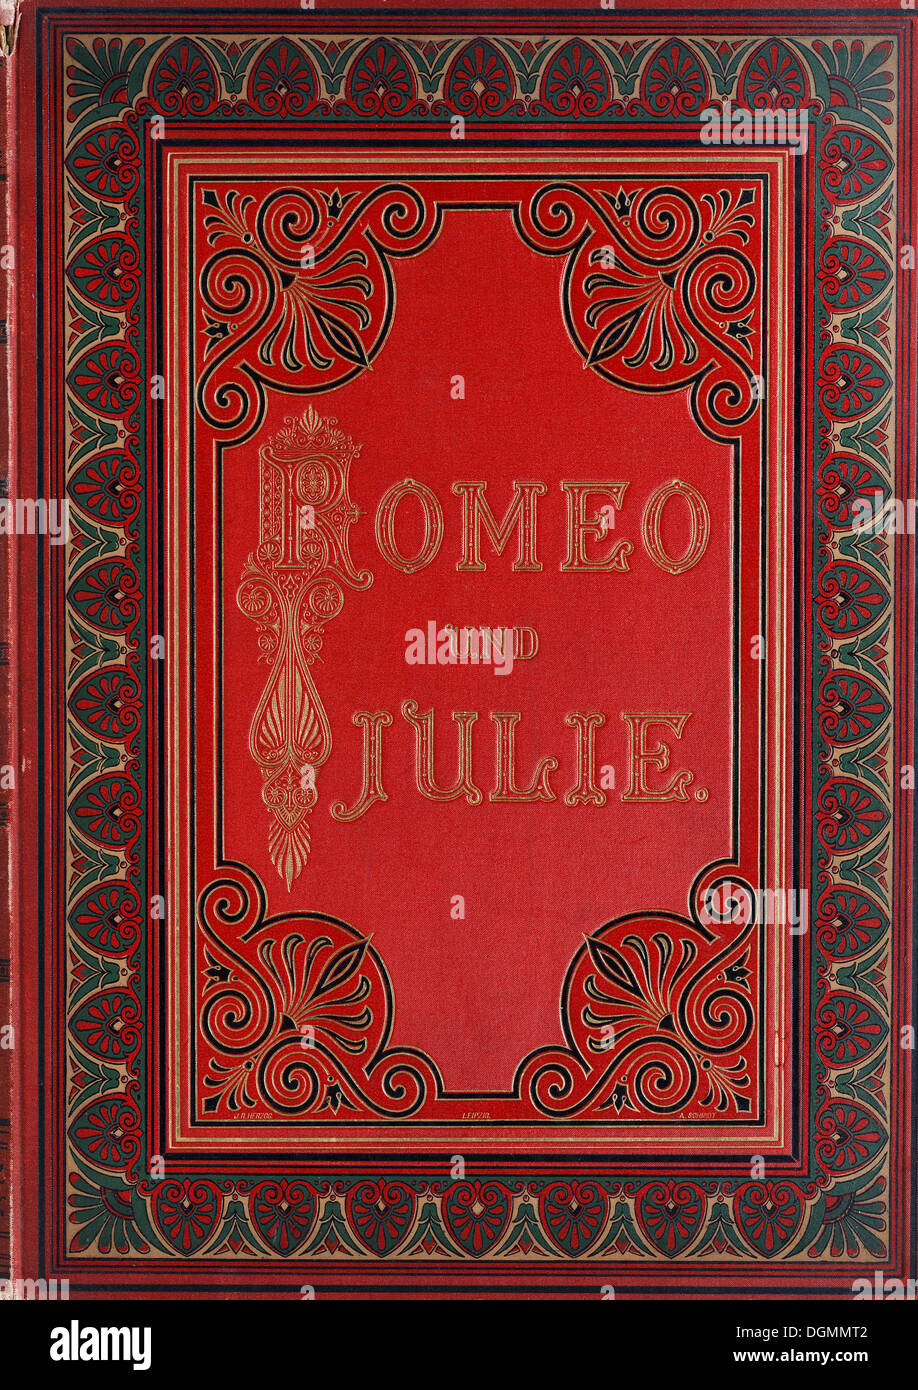 Book cover with gold embossed letters and ornamentation, Romeo and Juliet by Shakespeare, edition from 1890 - Stock Image